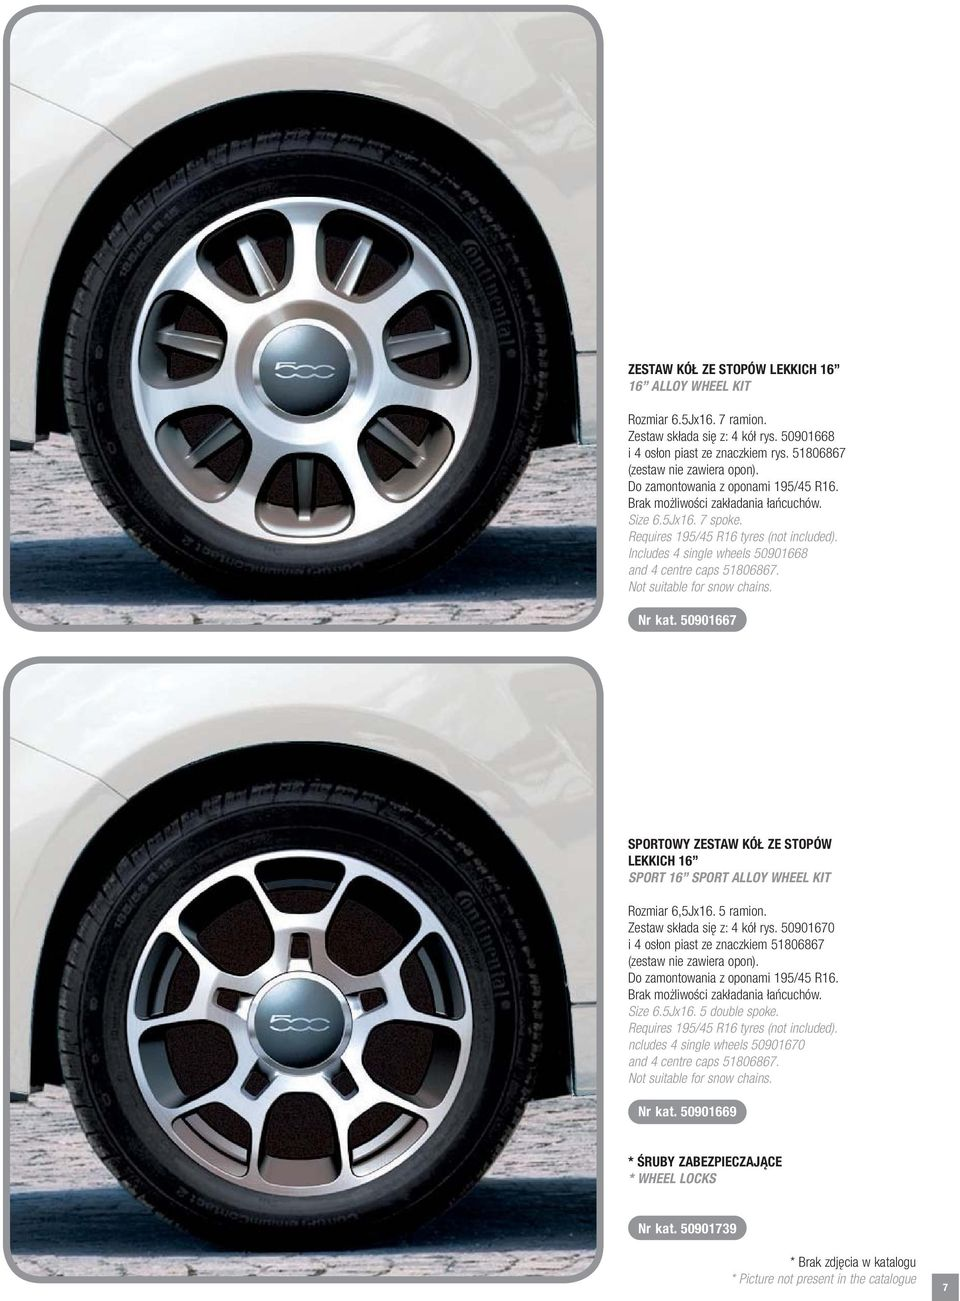 Includes 4 single wheels 50901668 and 4 centre caps 51806867. Not suitable for snow chains. Nr kat. 50901667 SPORTOWY ZESTAW KÓŁ ZE STOPÓW LEKKICH 16 SPORT 16 SPORT ALLOY WHEEL KIT Rozmiar 6,5Jx16.